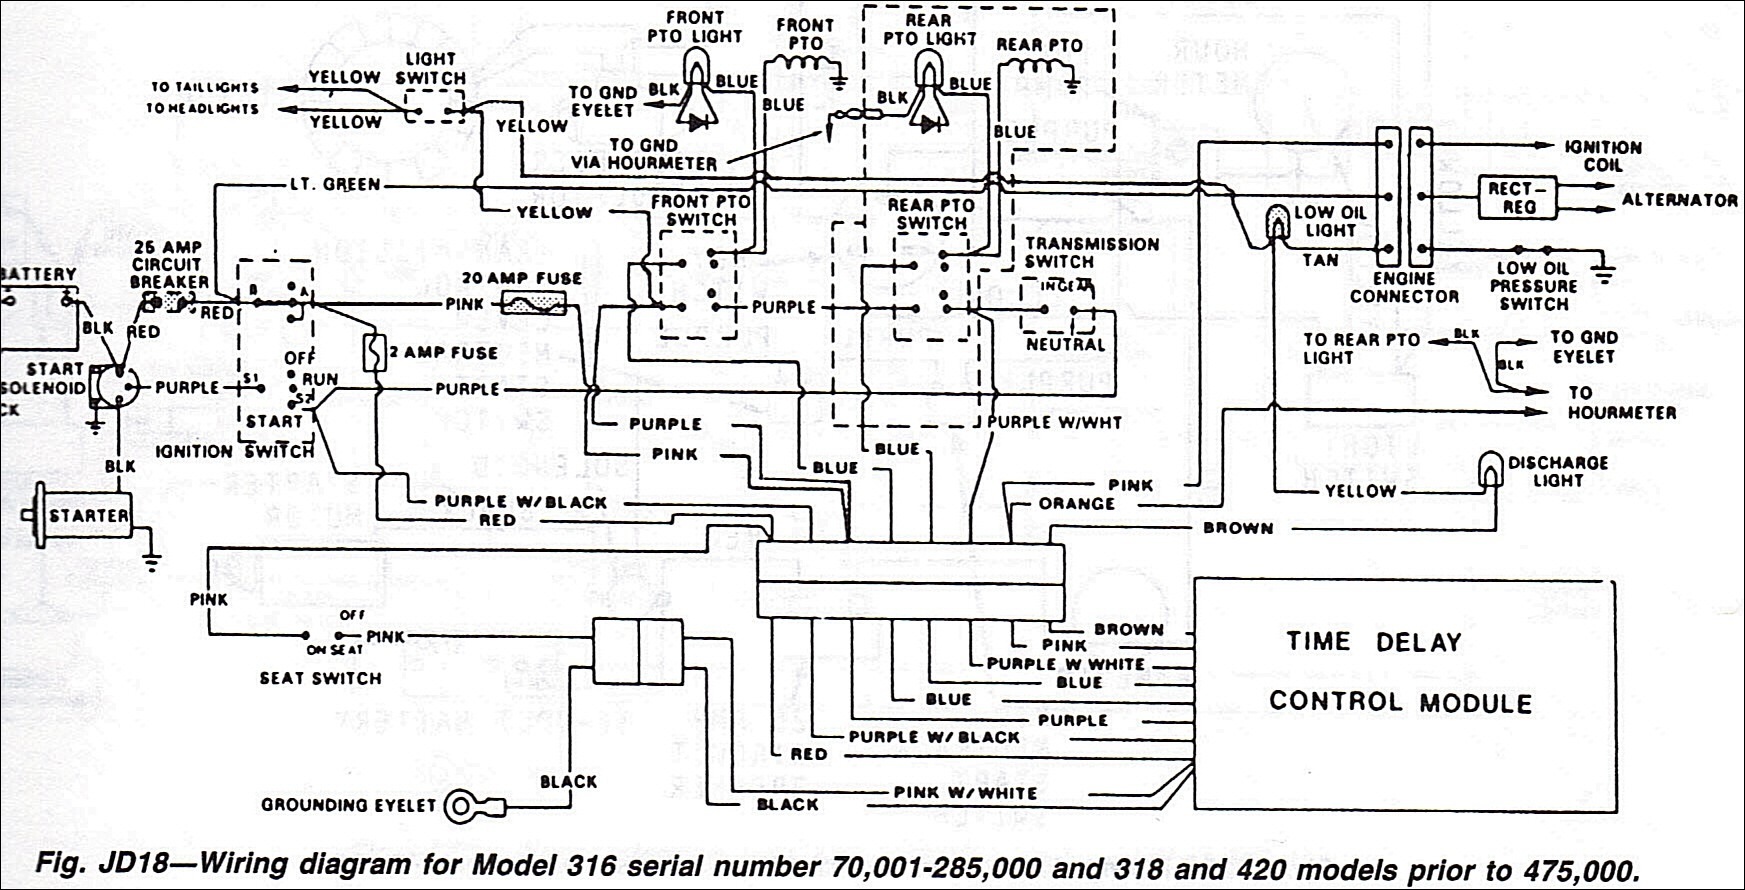 John Deere Gator Hpx 4x4 Wiring Diagram | Free Wiring Diagram on bobcat 2200 wiring diagram, kawasaki mule wiring diagram, polaris ranger wiring diagram, john deere gator 4x2 engine diagram, cub cadet tractor wiring diagram, peg perego wiring diagram, polaris outlaw wiring diagram, kawasaki teryx wiring diagram, apache wiring diagram, john deere gator parts diagram, home wiring diagram, john deere gator replacement parts, arctic cat prowler wiring diagram, yamaha rhino wiring diagram, bobcat 2300 wiring diagram, polaris trail boss wiring diagram, power wheels jeep wiring diagram, john deere lx172 parts diagram, polaris sportsman 600 wiring diagram, hpx gator parts diagram,